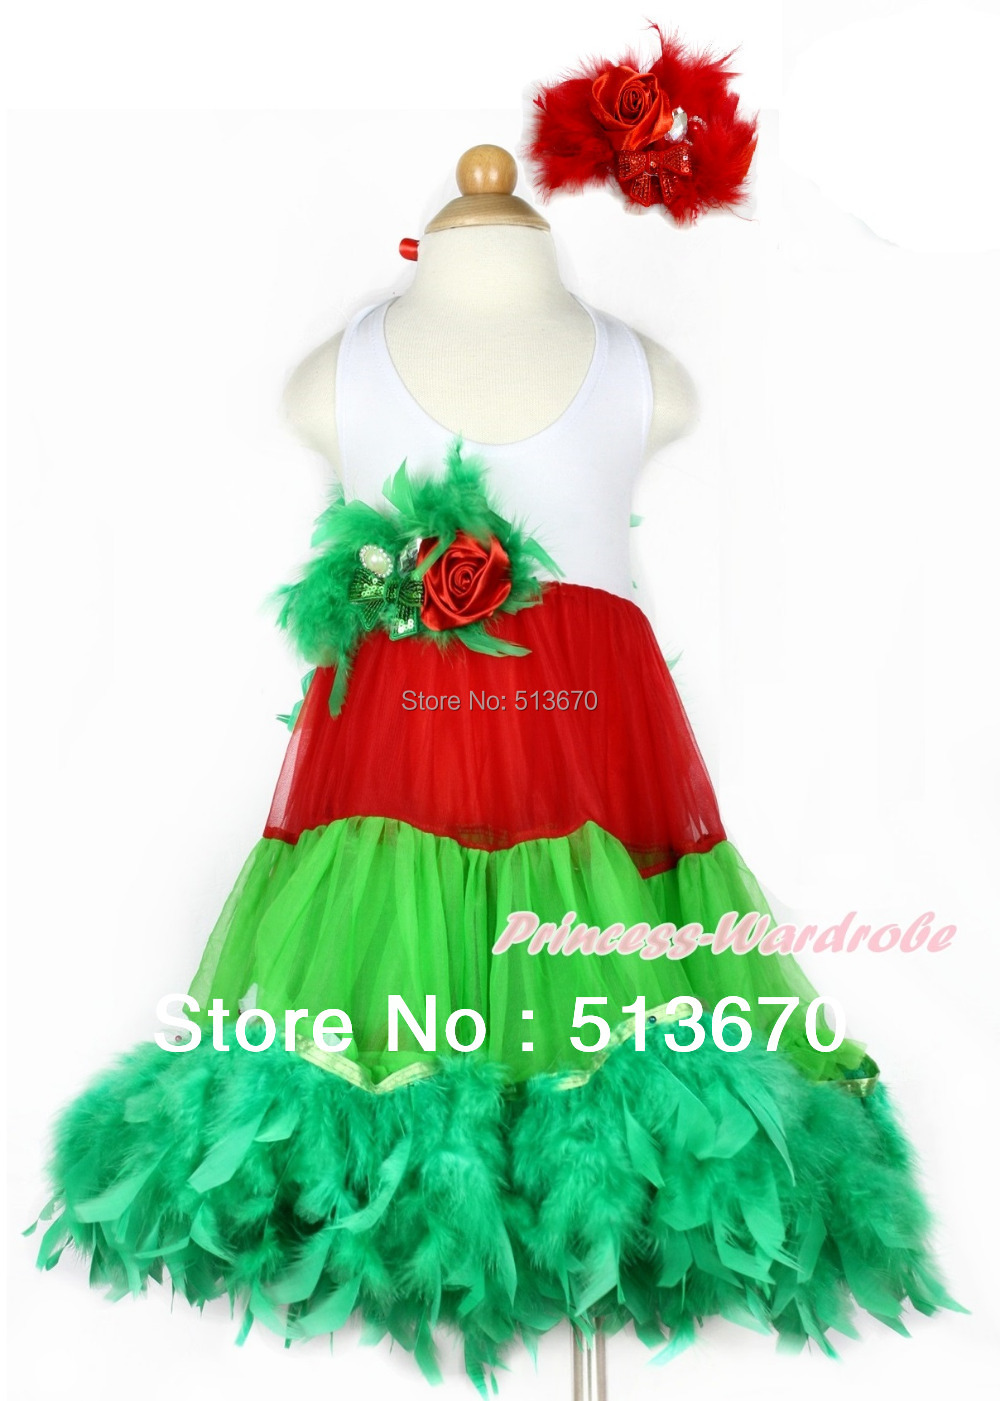 Xmas White Red Green ONE-PIECE Petti Dress Kelly Green Posh Feather Red Feather Rose Bow With Accessory 2PC Set MALP29 -1 lava a 2